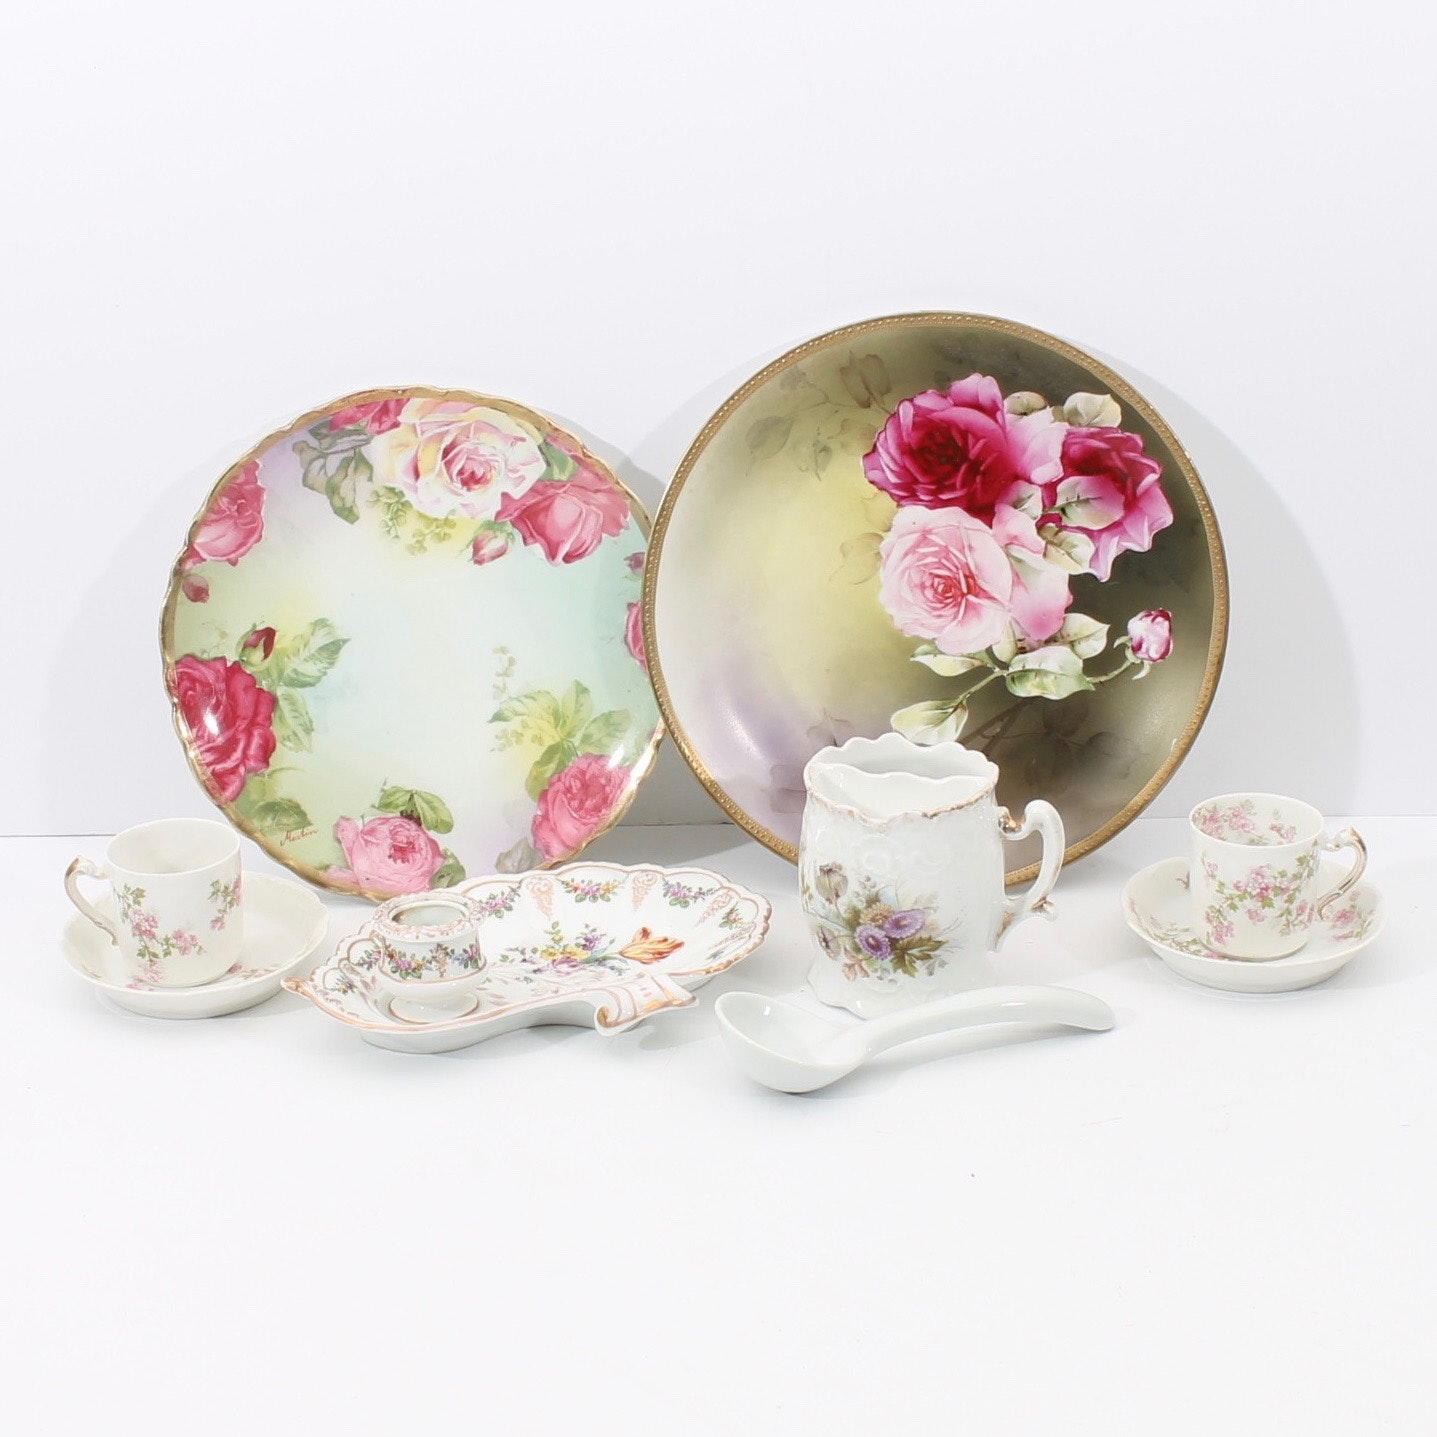 Ceramic Decor with Floral Designs including Haviland and Nippon